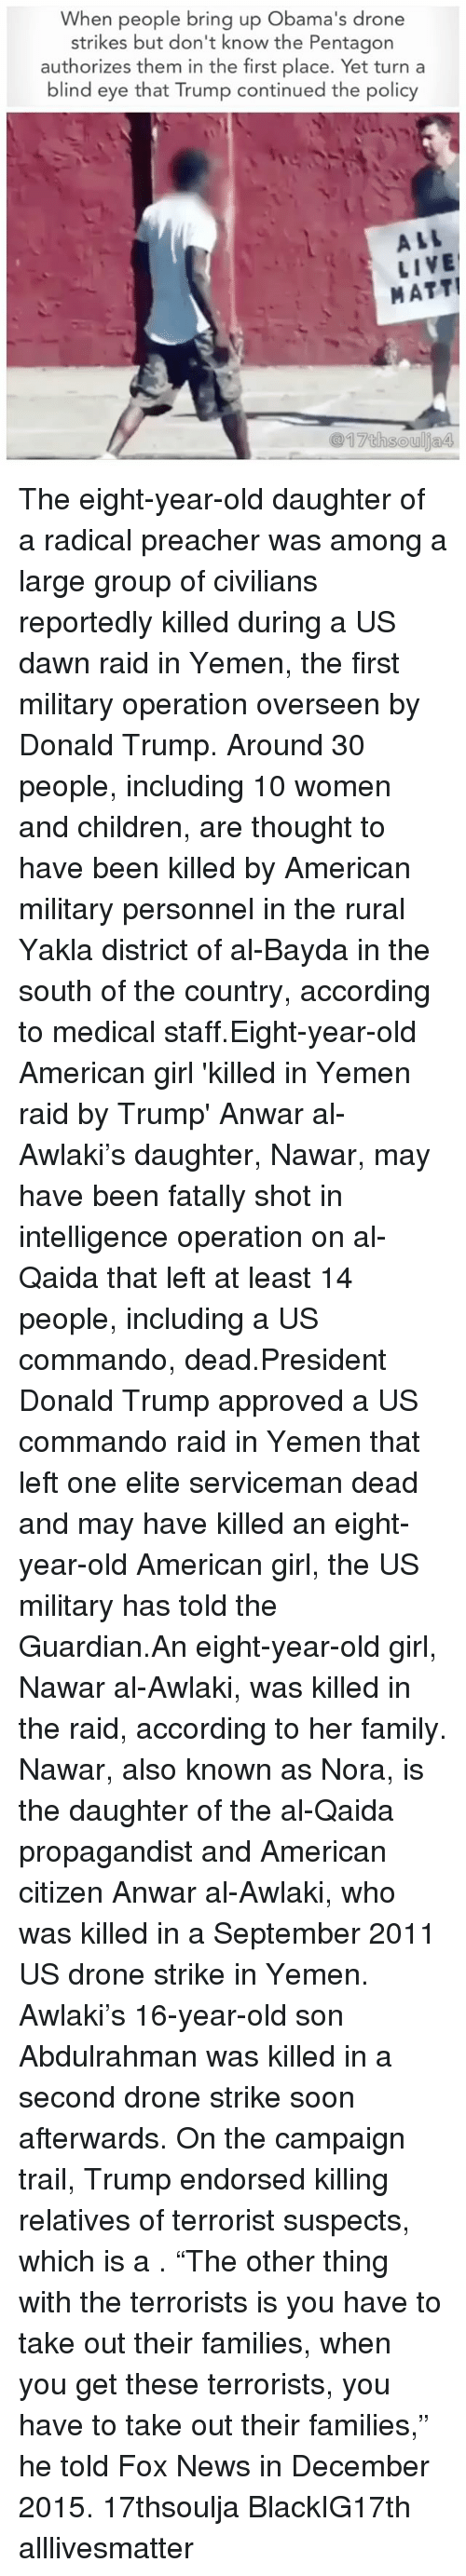 "Elitism: When people bring up Obama's drone  strikes but don't know the Pentagon  authorizes them in the first place. Yet turn a  blind eye that Trump continued the policy  ALL  LIVE  MATT! The eight-year-old daughter of a radical preacher was among a large group of civilians reportedly killed during a US dawn raid in Yemen, the first military operation overseen by Donald Trump. Around 30 people, including 10 women and children, are thought to have been killed by American military personnel in the rural Yakla district of al-Bayda in the south of the country, according to medical staff.Eight-year-old American girl 'killed in Yemen raid <approved >by Trump' Anwar al-Awlaki's daughter, Nawar, may have been fatally shot in intelligence operation on al-Qaida that left at least 14 people, including a US commando, dead.President Donald Trump <personally >approved a US commando raid in Yemen that left one elite serviceman dead and may have killed an eight-year-old American girl, the US military has told the Guardian.An eight-year-old girl, Nawar al-Awlaki, was killed in the raid, according to her family. Nawar, also known as Nora, is the daughter of the al-Qaida propagandist and American citizen Anwar al-Awlaki, who was killed in a September 2011 US drone strike in Yemen. Awlaki's 16-year-old son Abdulrahman was killed in a second drone strike soon afterwards. On the campaign trail, Trump endorsed killing relatives of terrorist suspects, which is a <war crime>. ""The other thing with the terrorists is you have to take out their families, when you get these terrorists, you have to take out their families,"" he told Fox News in December 2015. 17thsoulja BlackIG17th alllivesmatter"